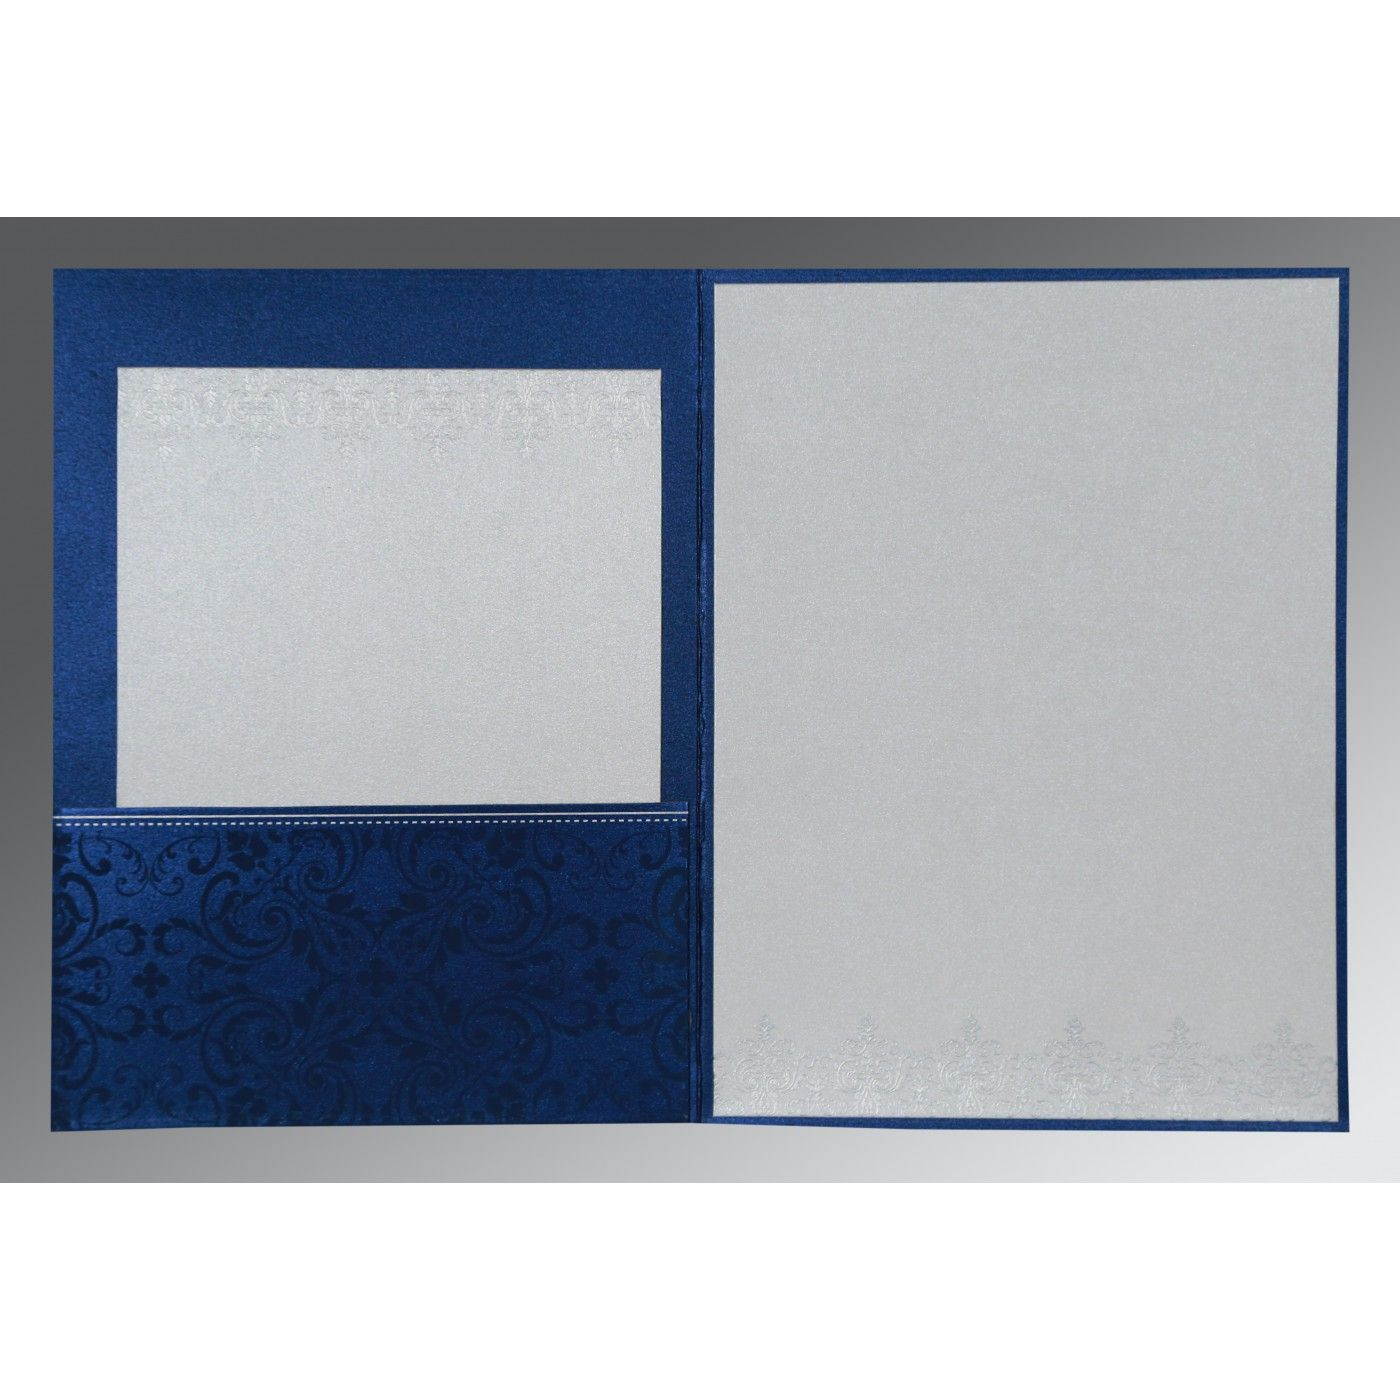 COBALT BLUE SHIMMERY SCREEN PRINTED WEDDING CARD : CW-8244K - IndianWeddingCards